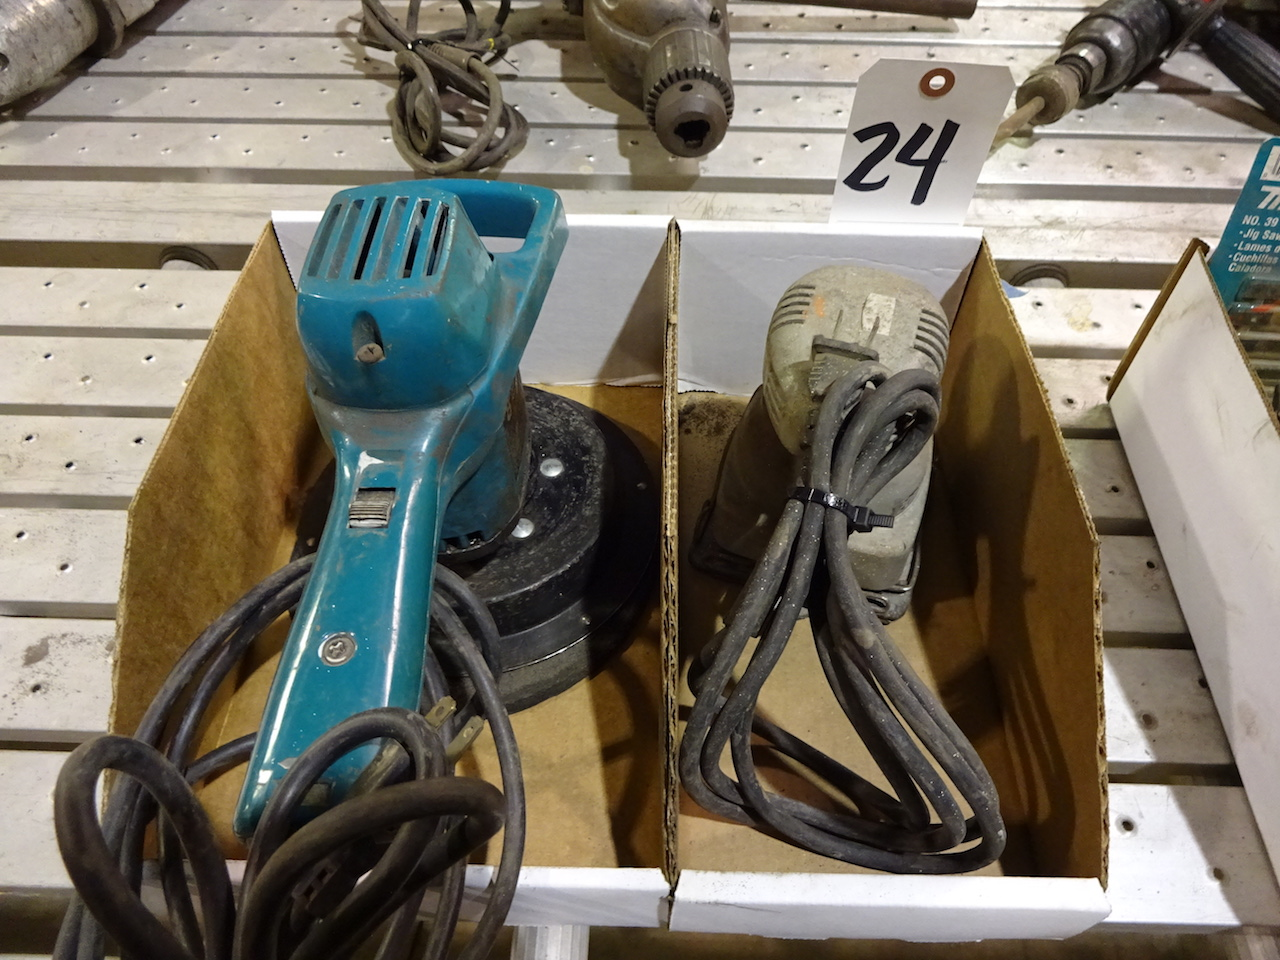 Lot 24 - LOT: Black & Decker 8 in. Random Orbit Polisher & Porter Cable Model 340 Electric Sander